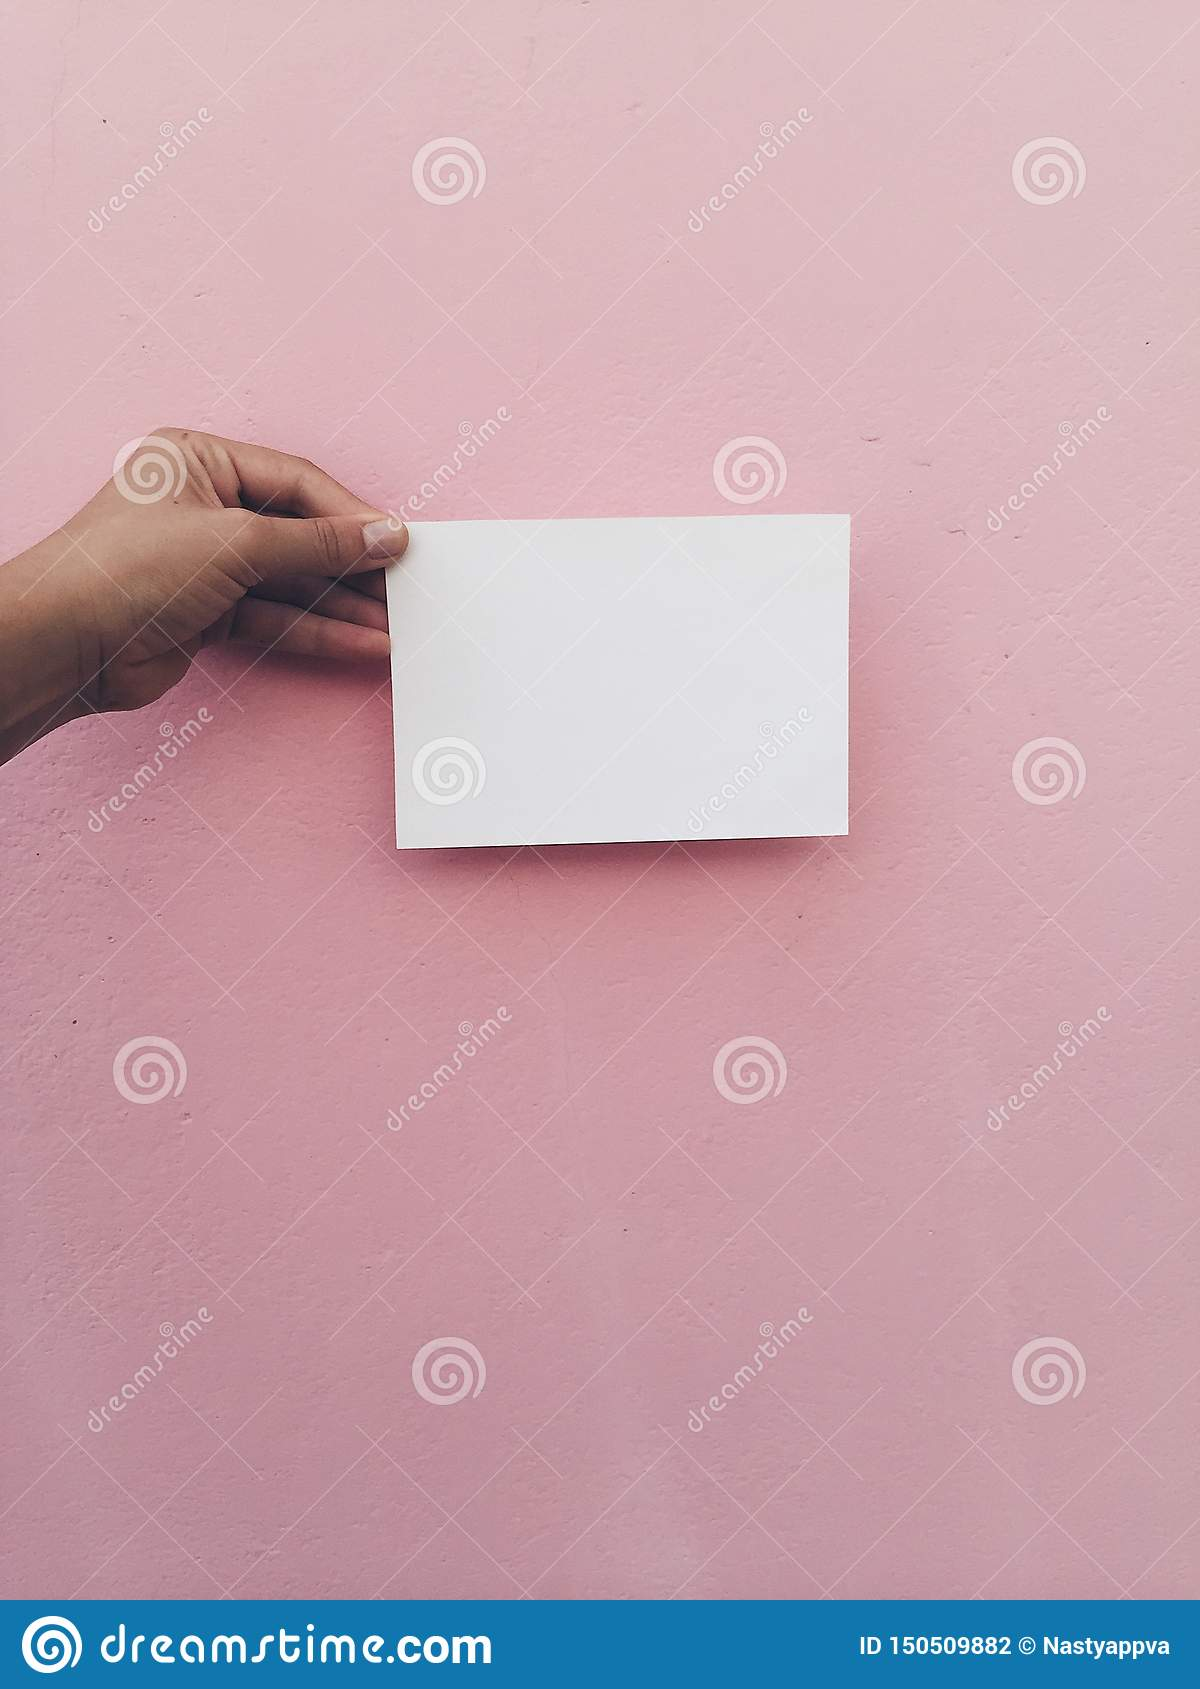 Hand hold white card at pink wall background